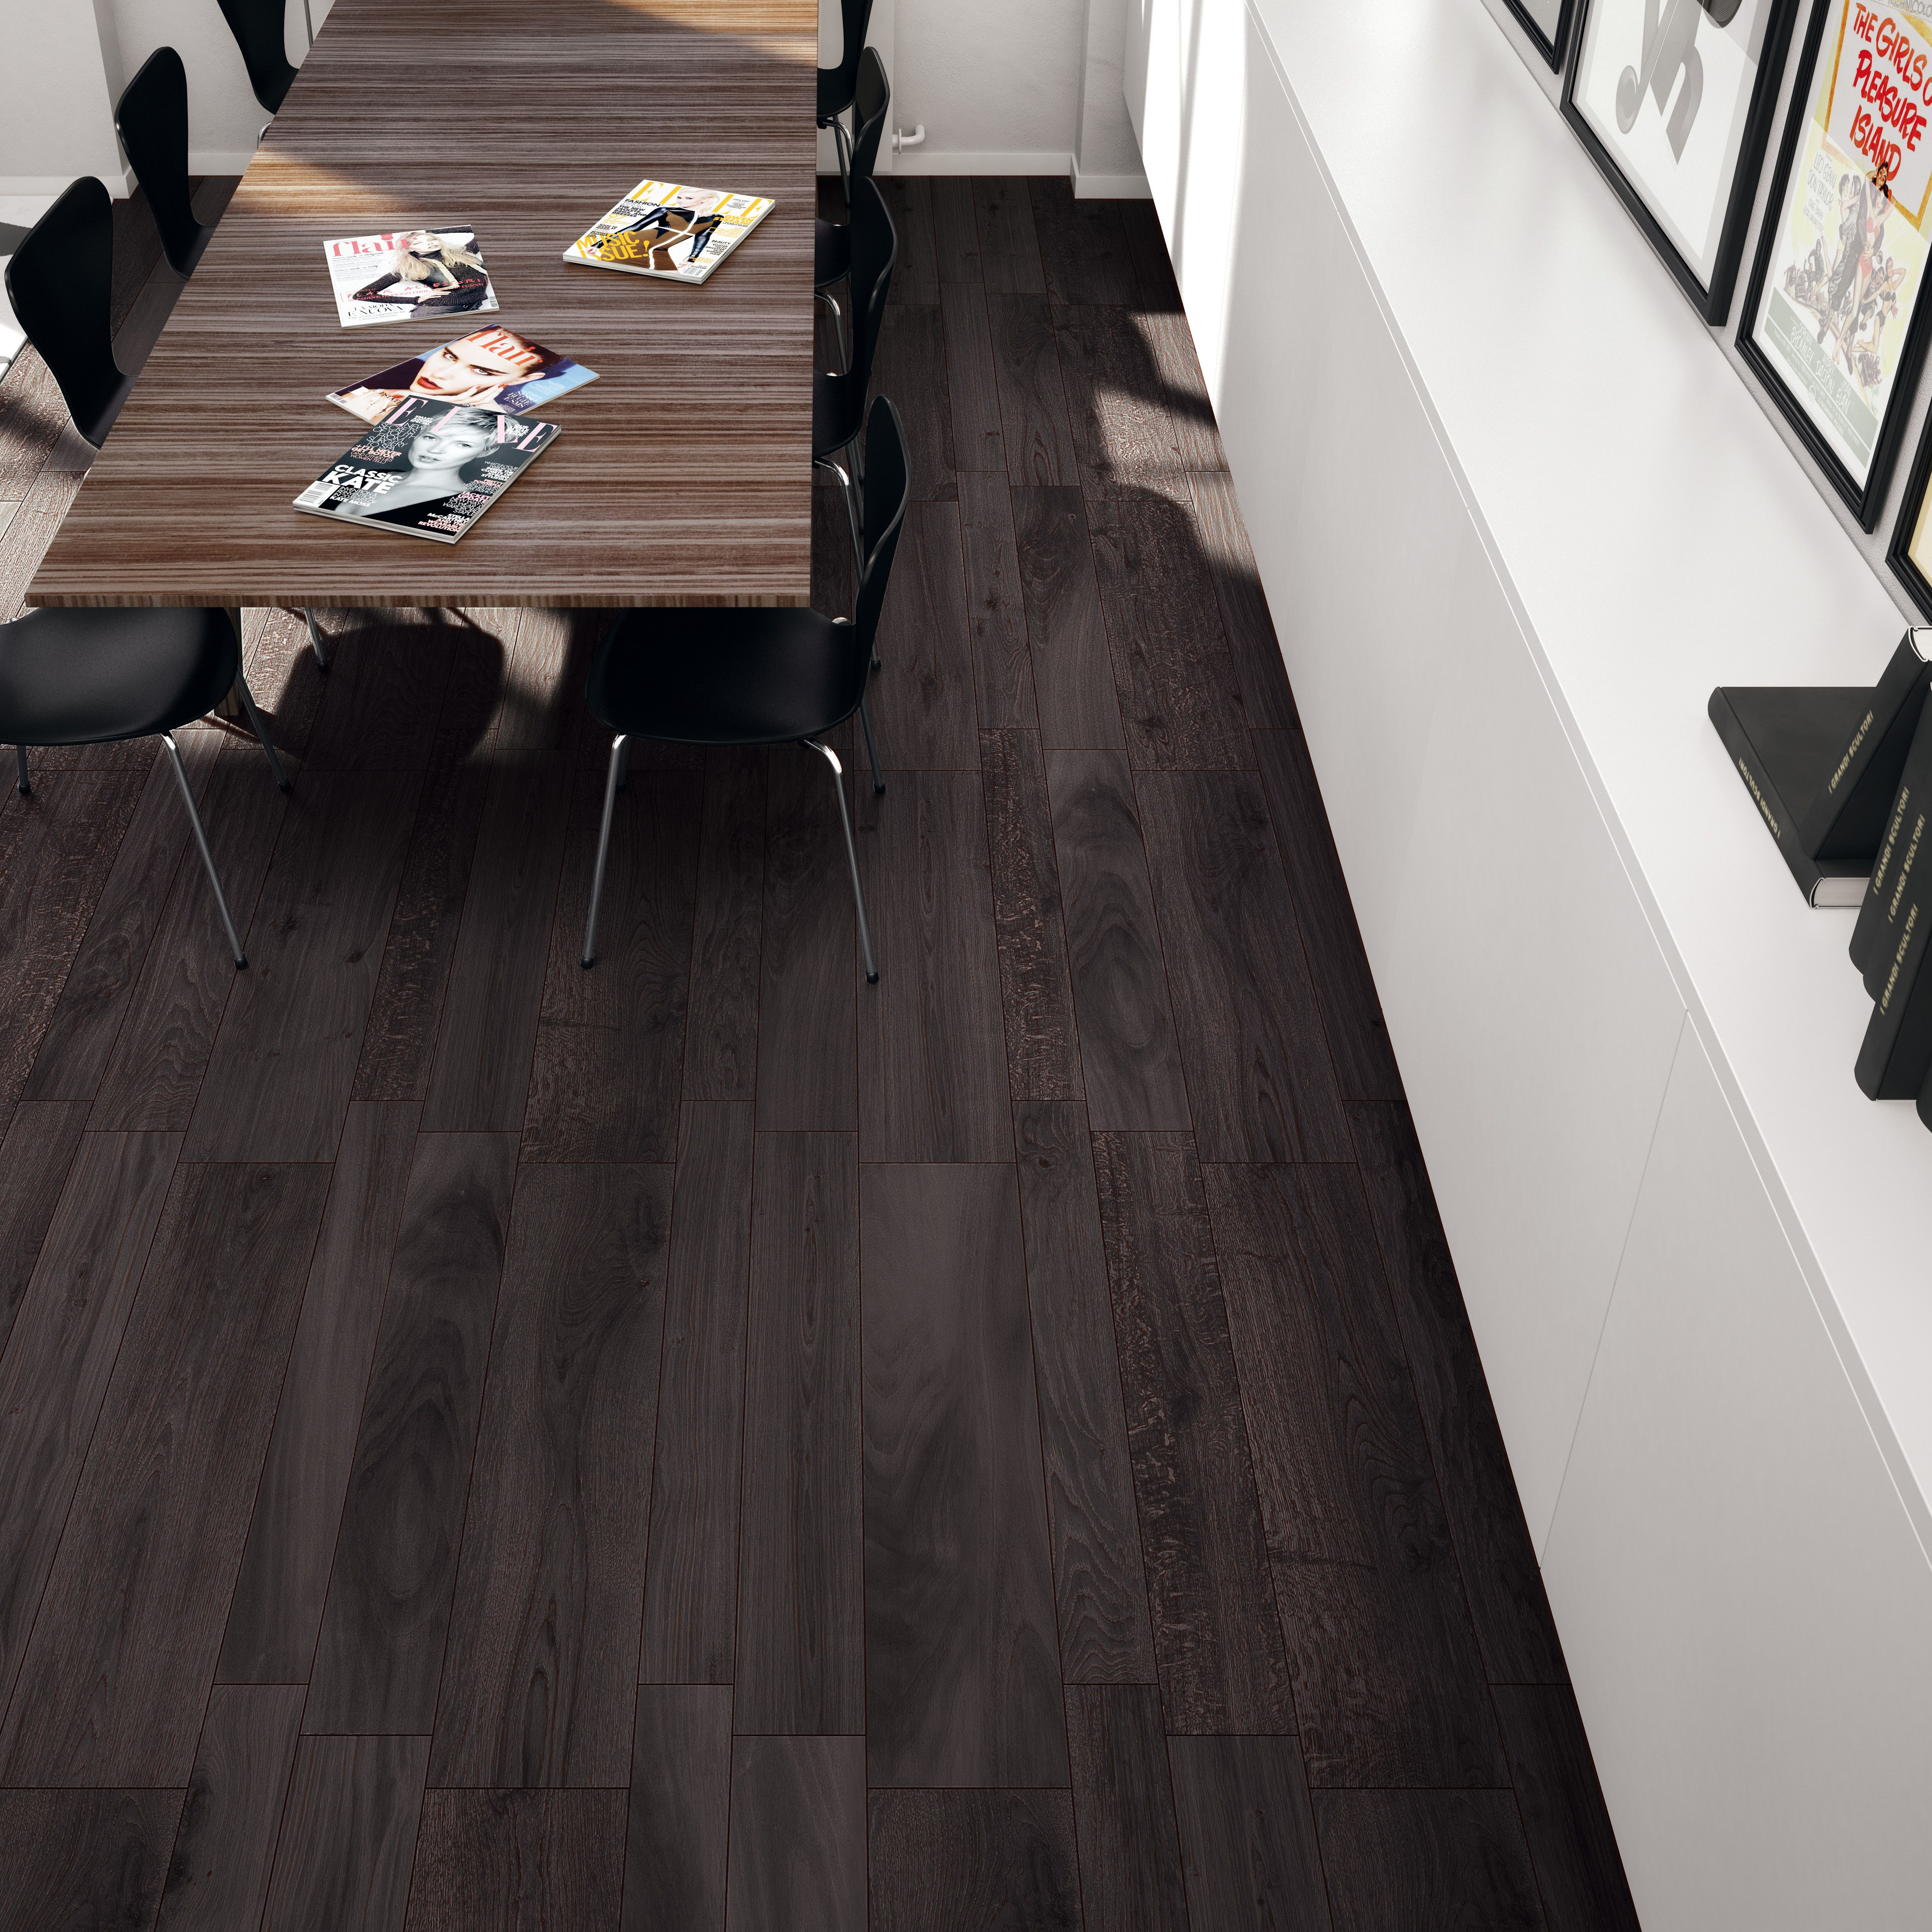 Sassuolo atelier wenge wood porcelain tile in 4x36 6x36 and 9x36 sassuolo atelier wenge wood porcelain tile in 4x36 6x36 and 9x36 size combination dailygadgetfo Images